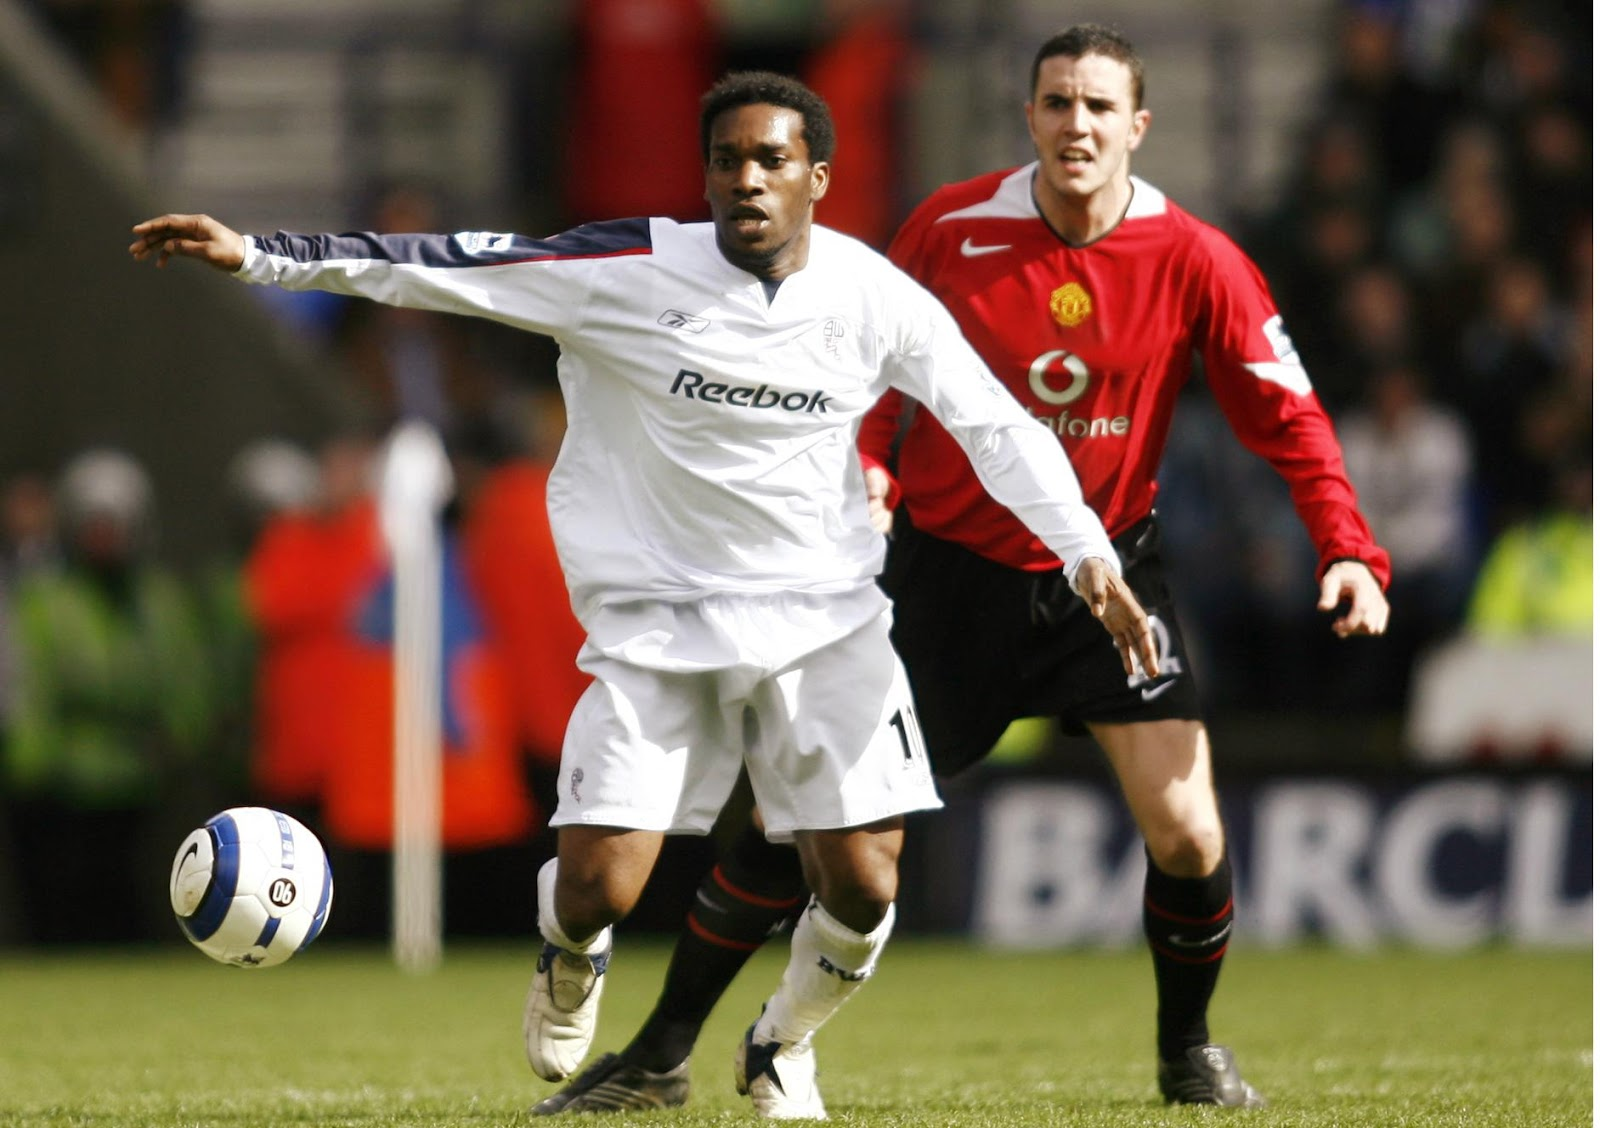 epl the best okocha kanu mikel and facts soccernet ng football news and epl the best okocha kanu mikel and facts soccernet ng football news and